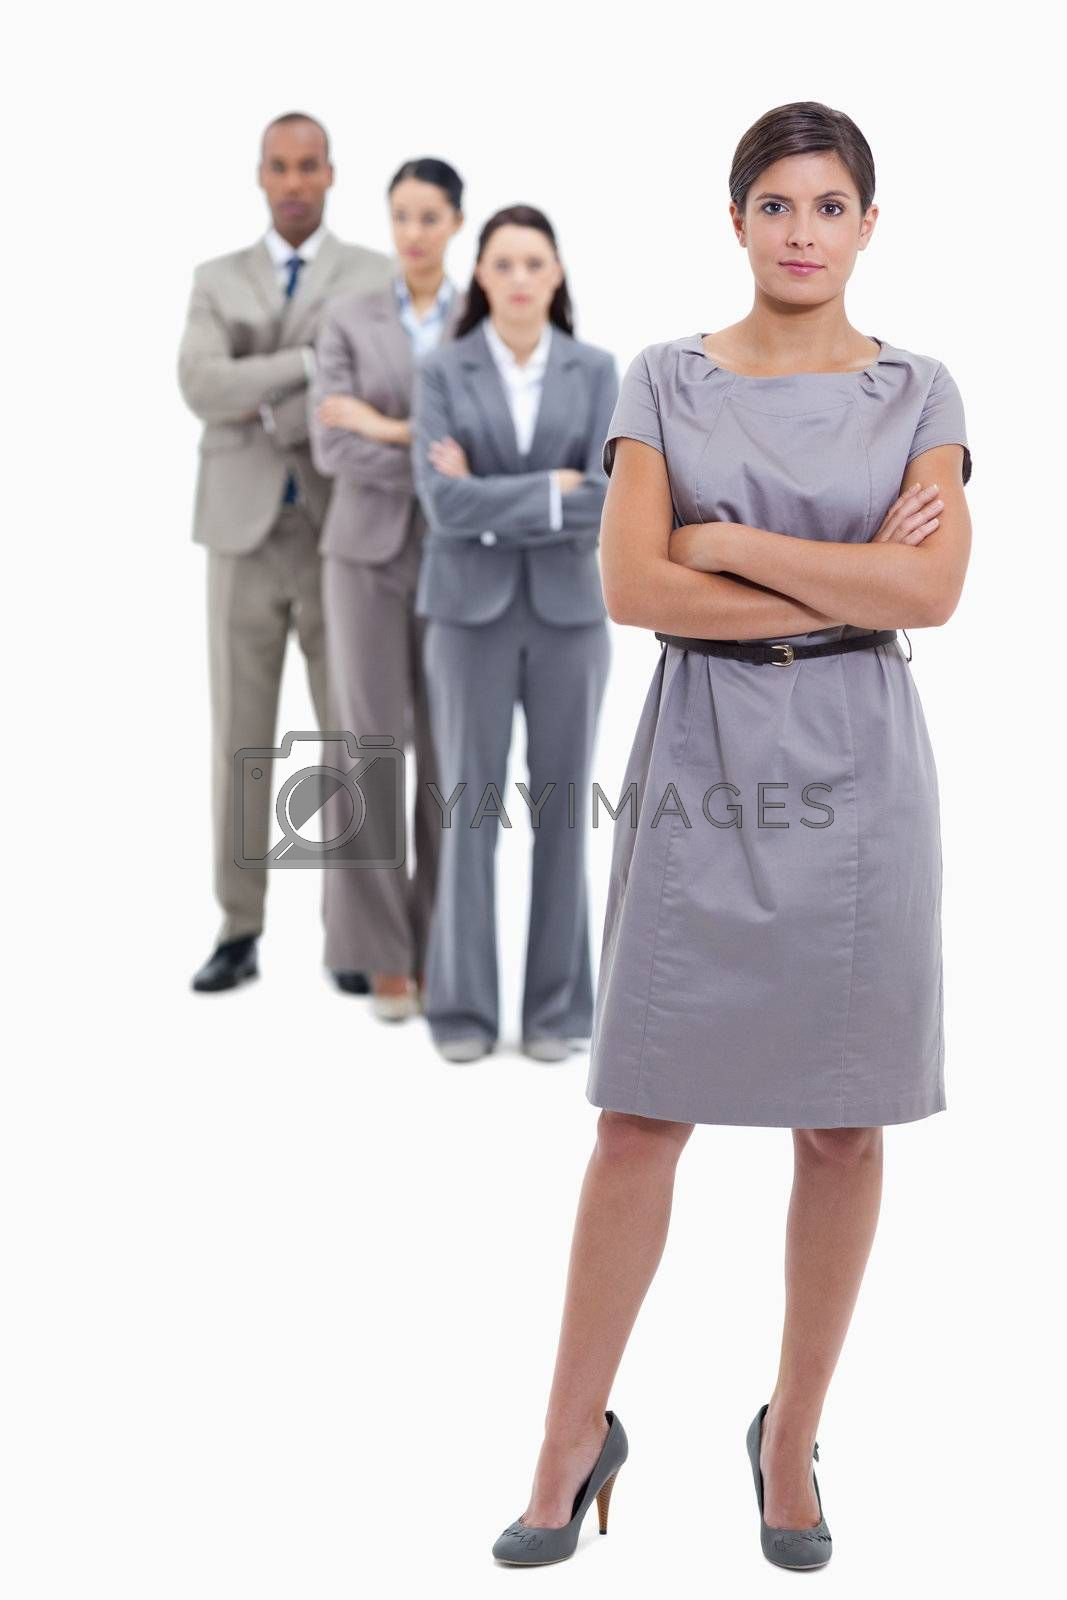 Businesswoman with a discrete smile and a team crossing their arms and standing behind each other against white background